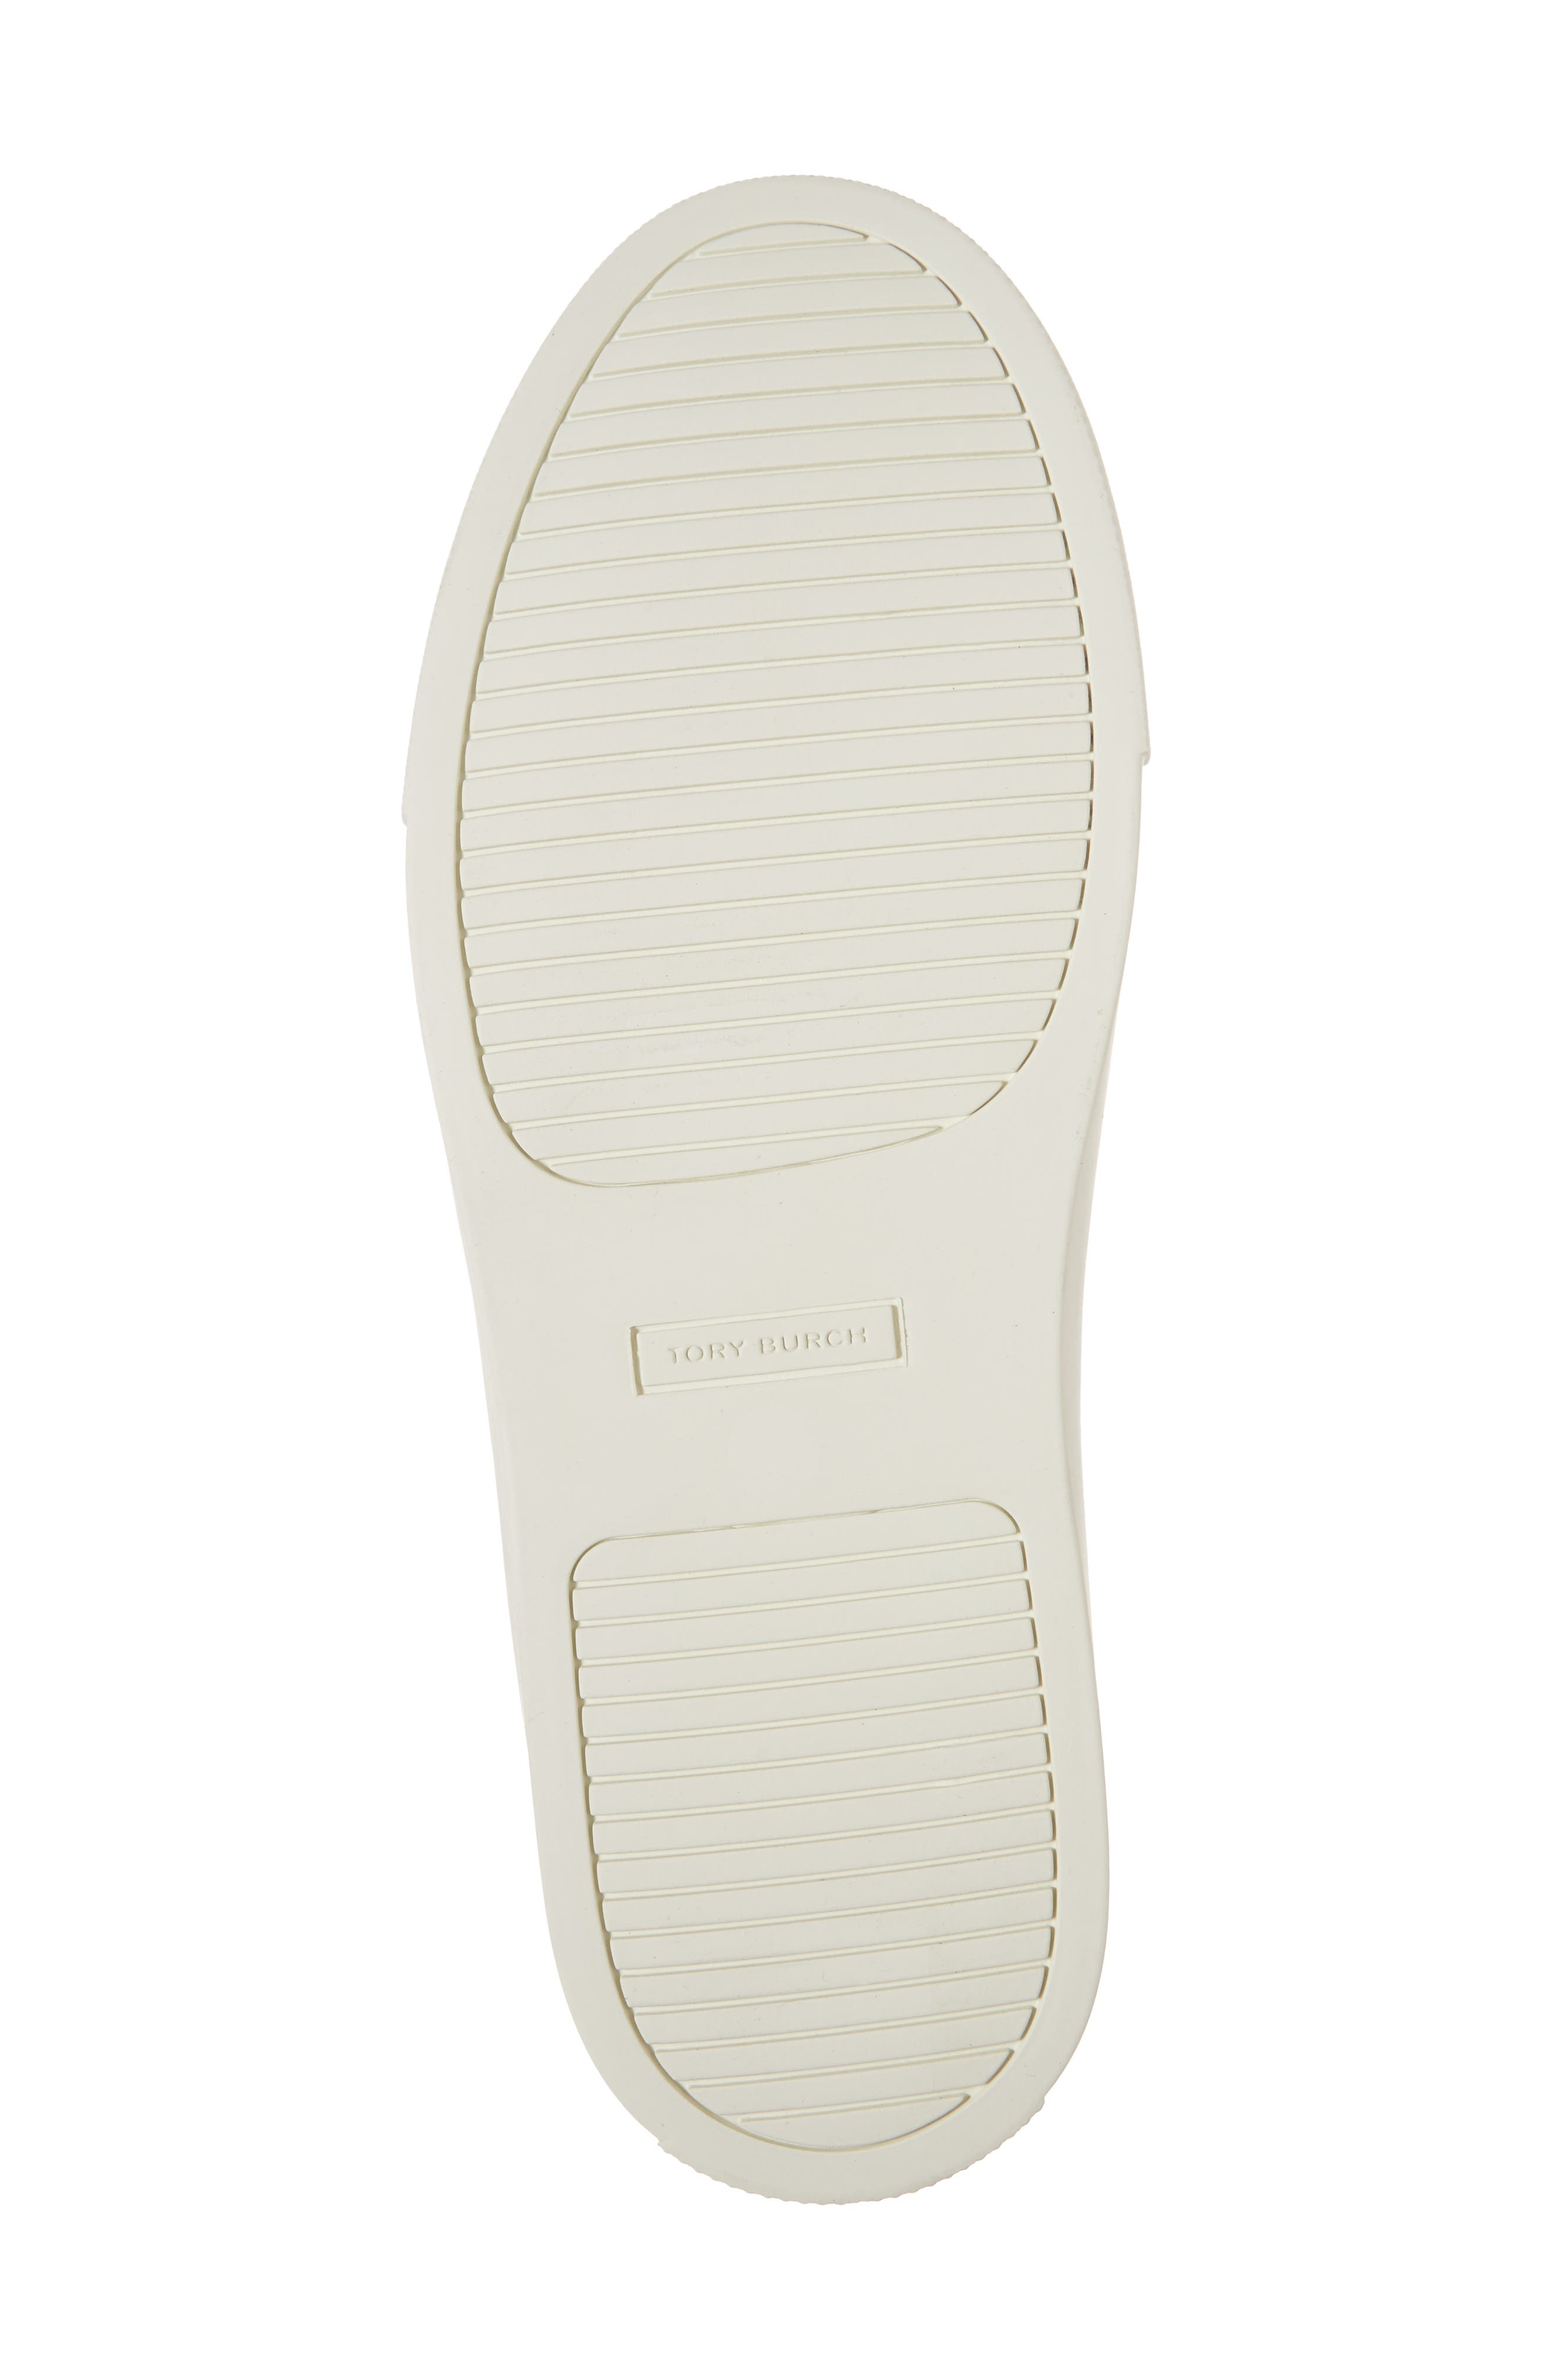 TORY BURCH,                             Huarache 2 Slip-On Sneaker,                             Alternate thumbnail 6, color,                             403